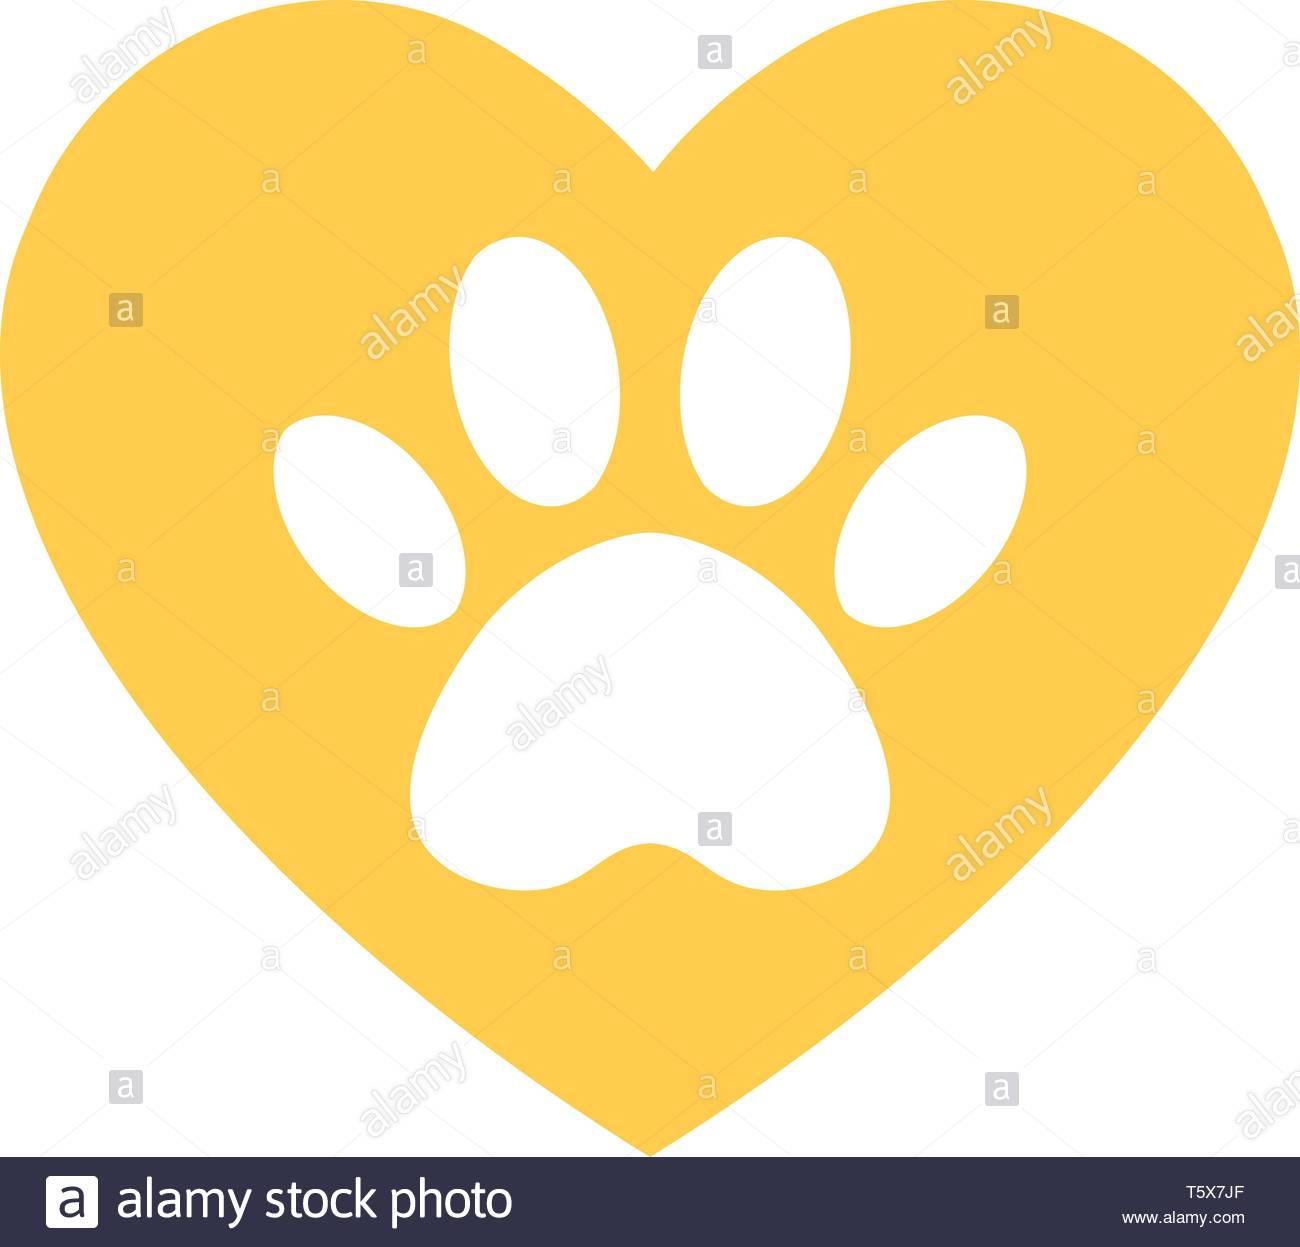 cat and dog paw print inside heart  The dog's track in the yellow